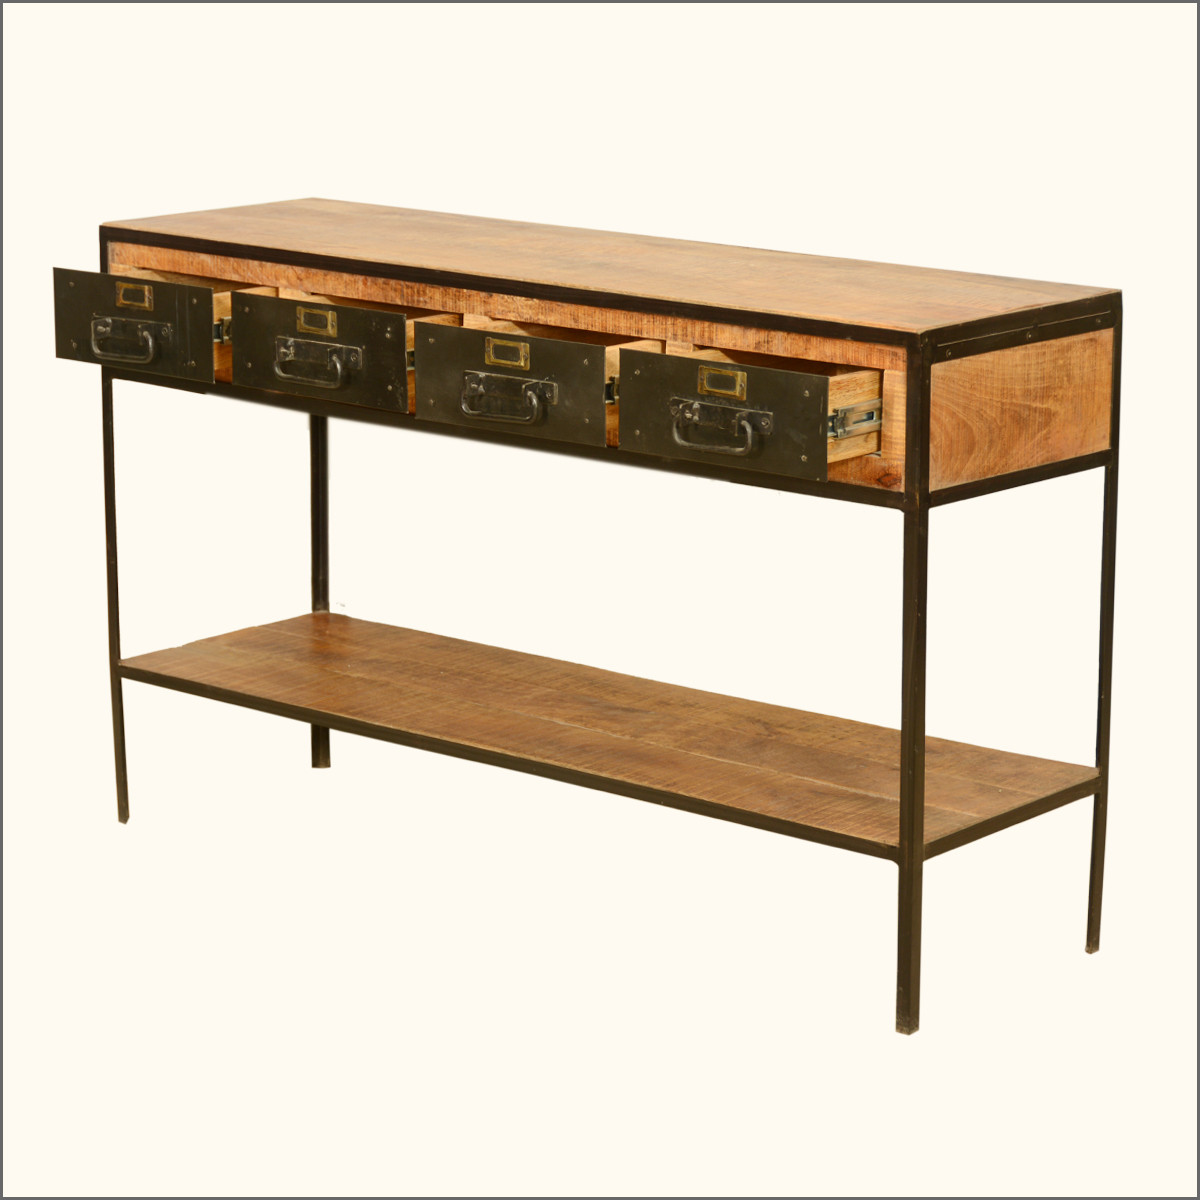 Best ideas about Metal Entryway Table . Save or Pin Furniture Brown Wooden Entryway Tables With Two Drawers Now.